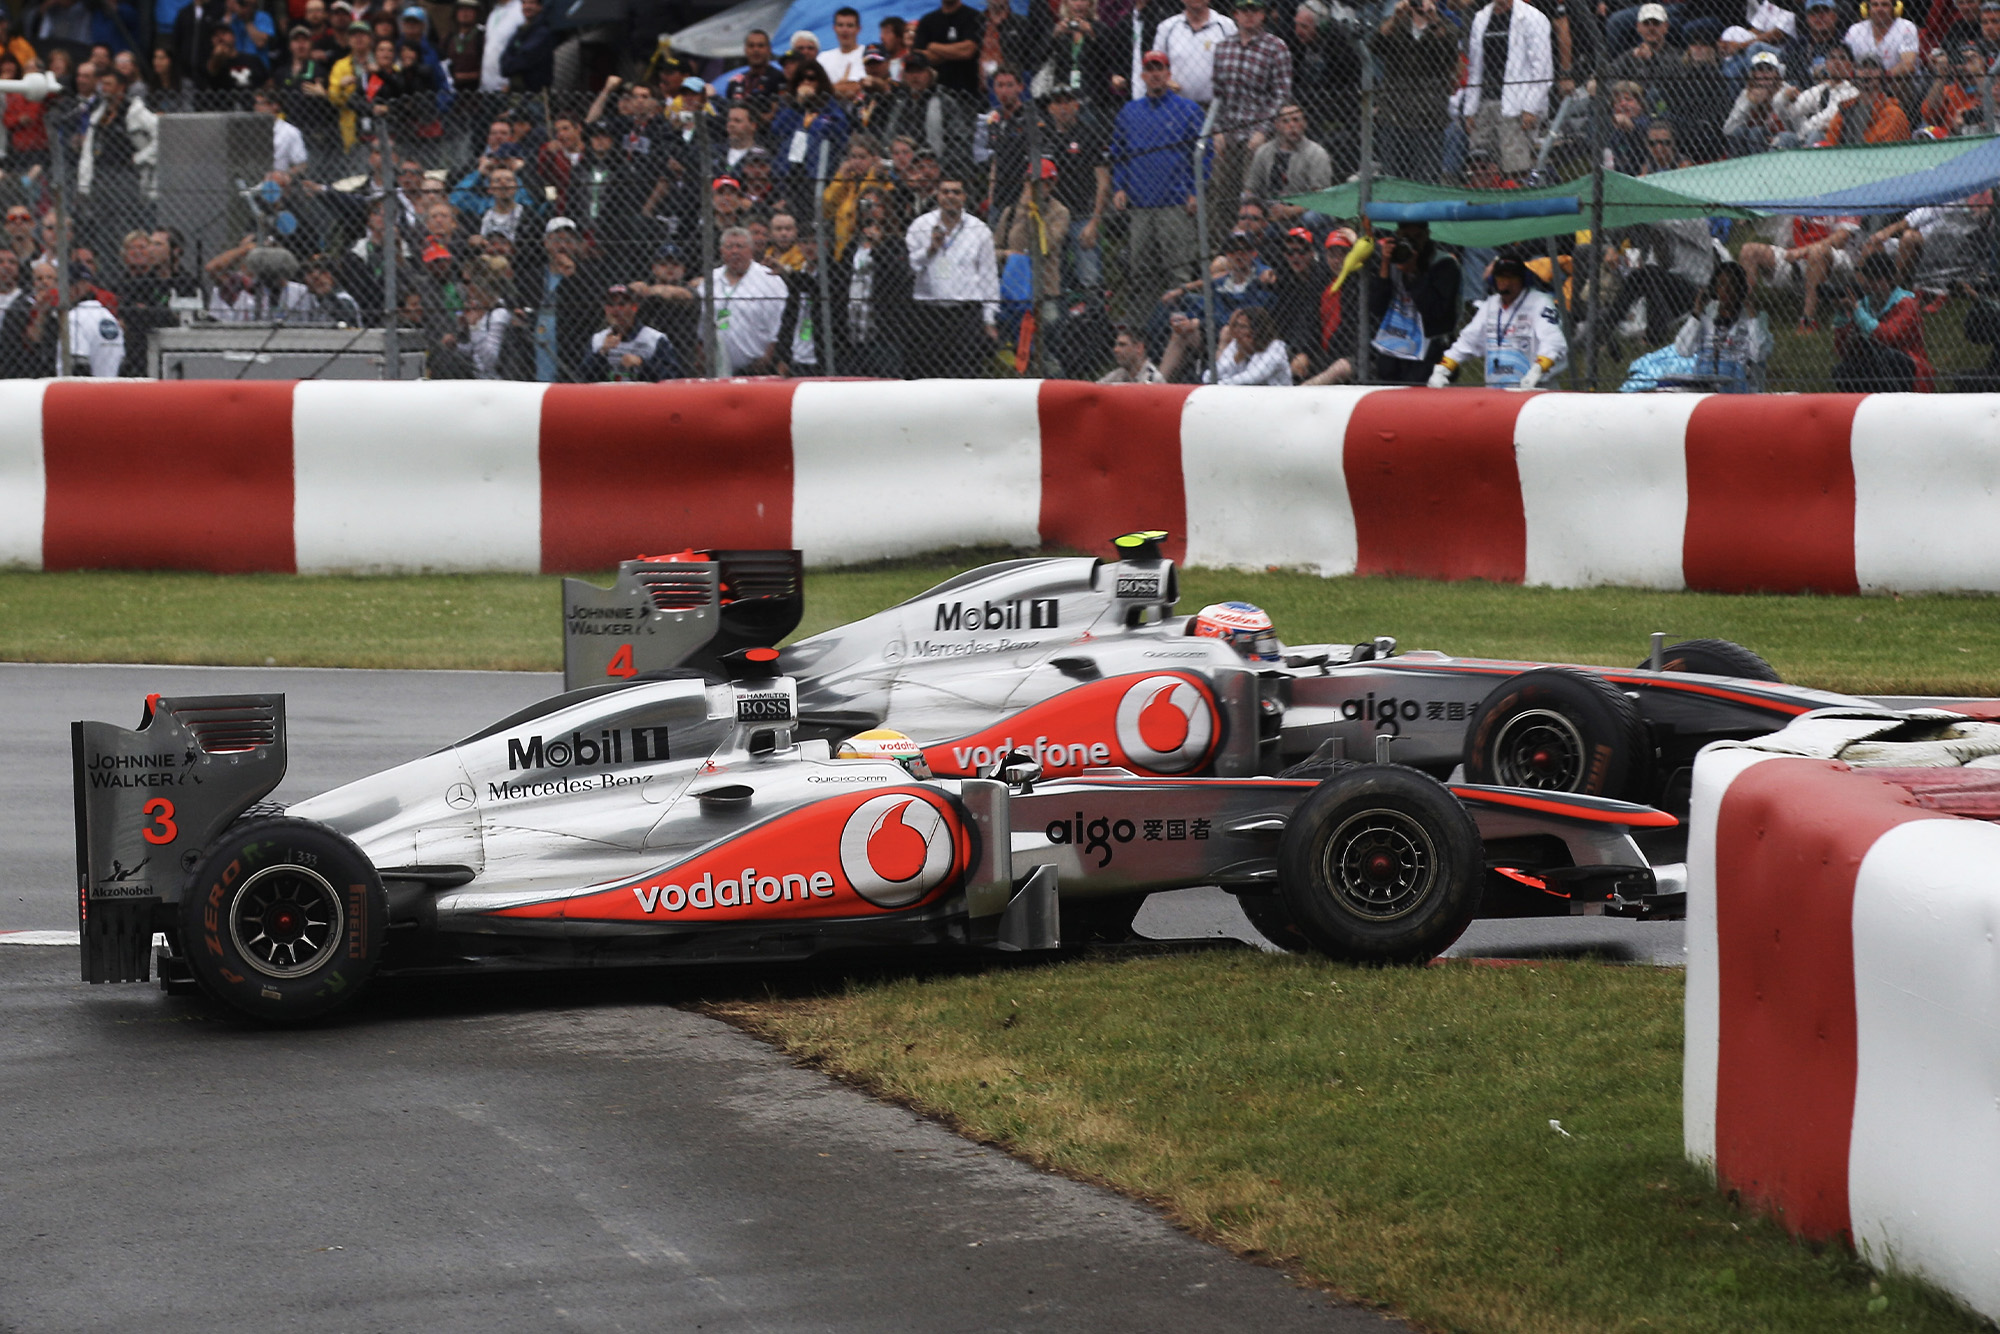 Jenson Button and Lewis Hamilton collide in the 2011 canadian grand prix